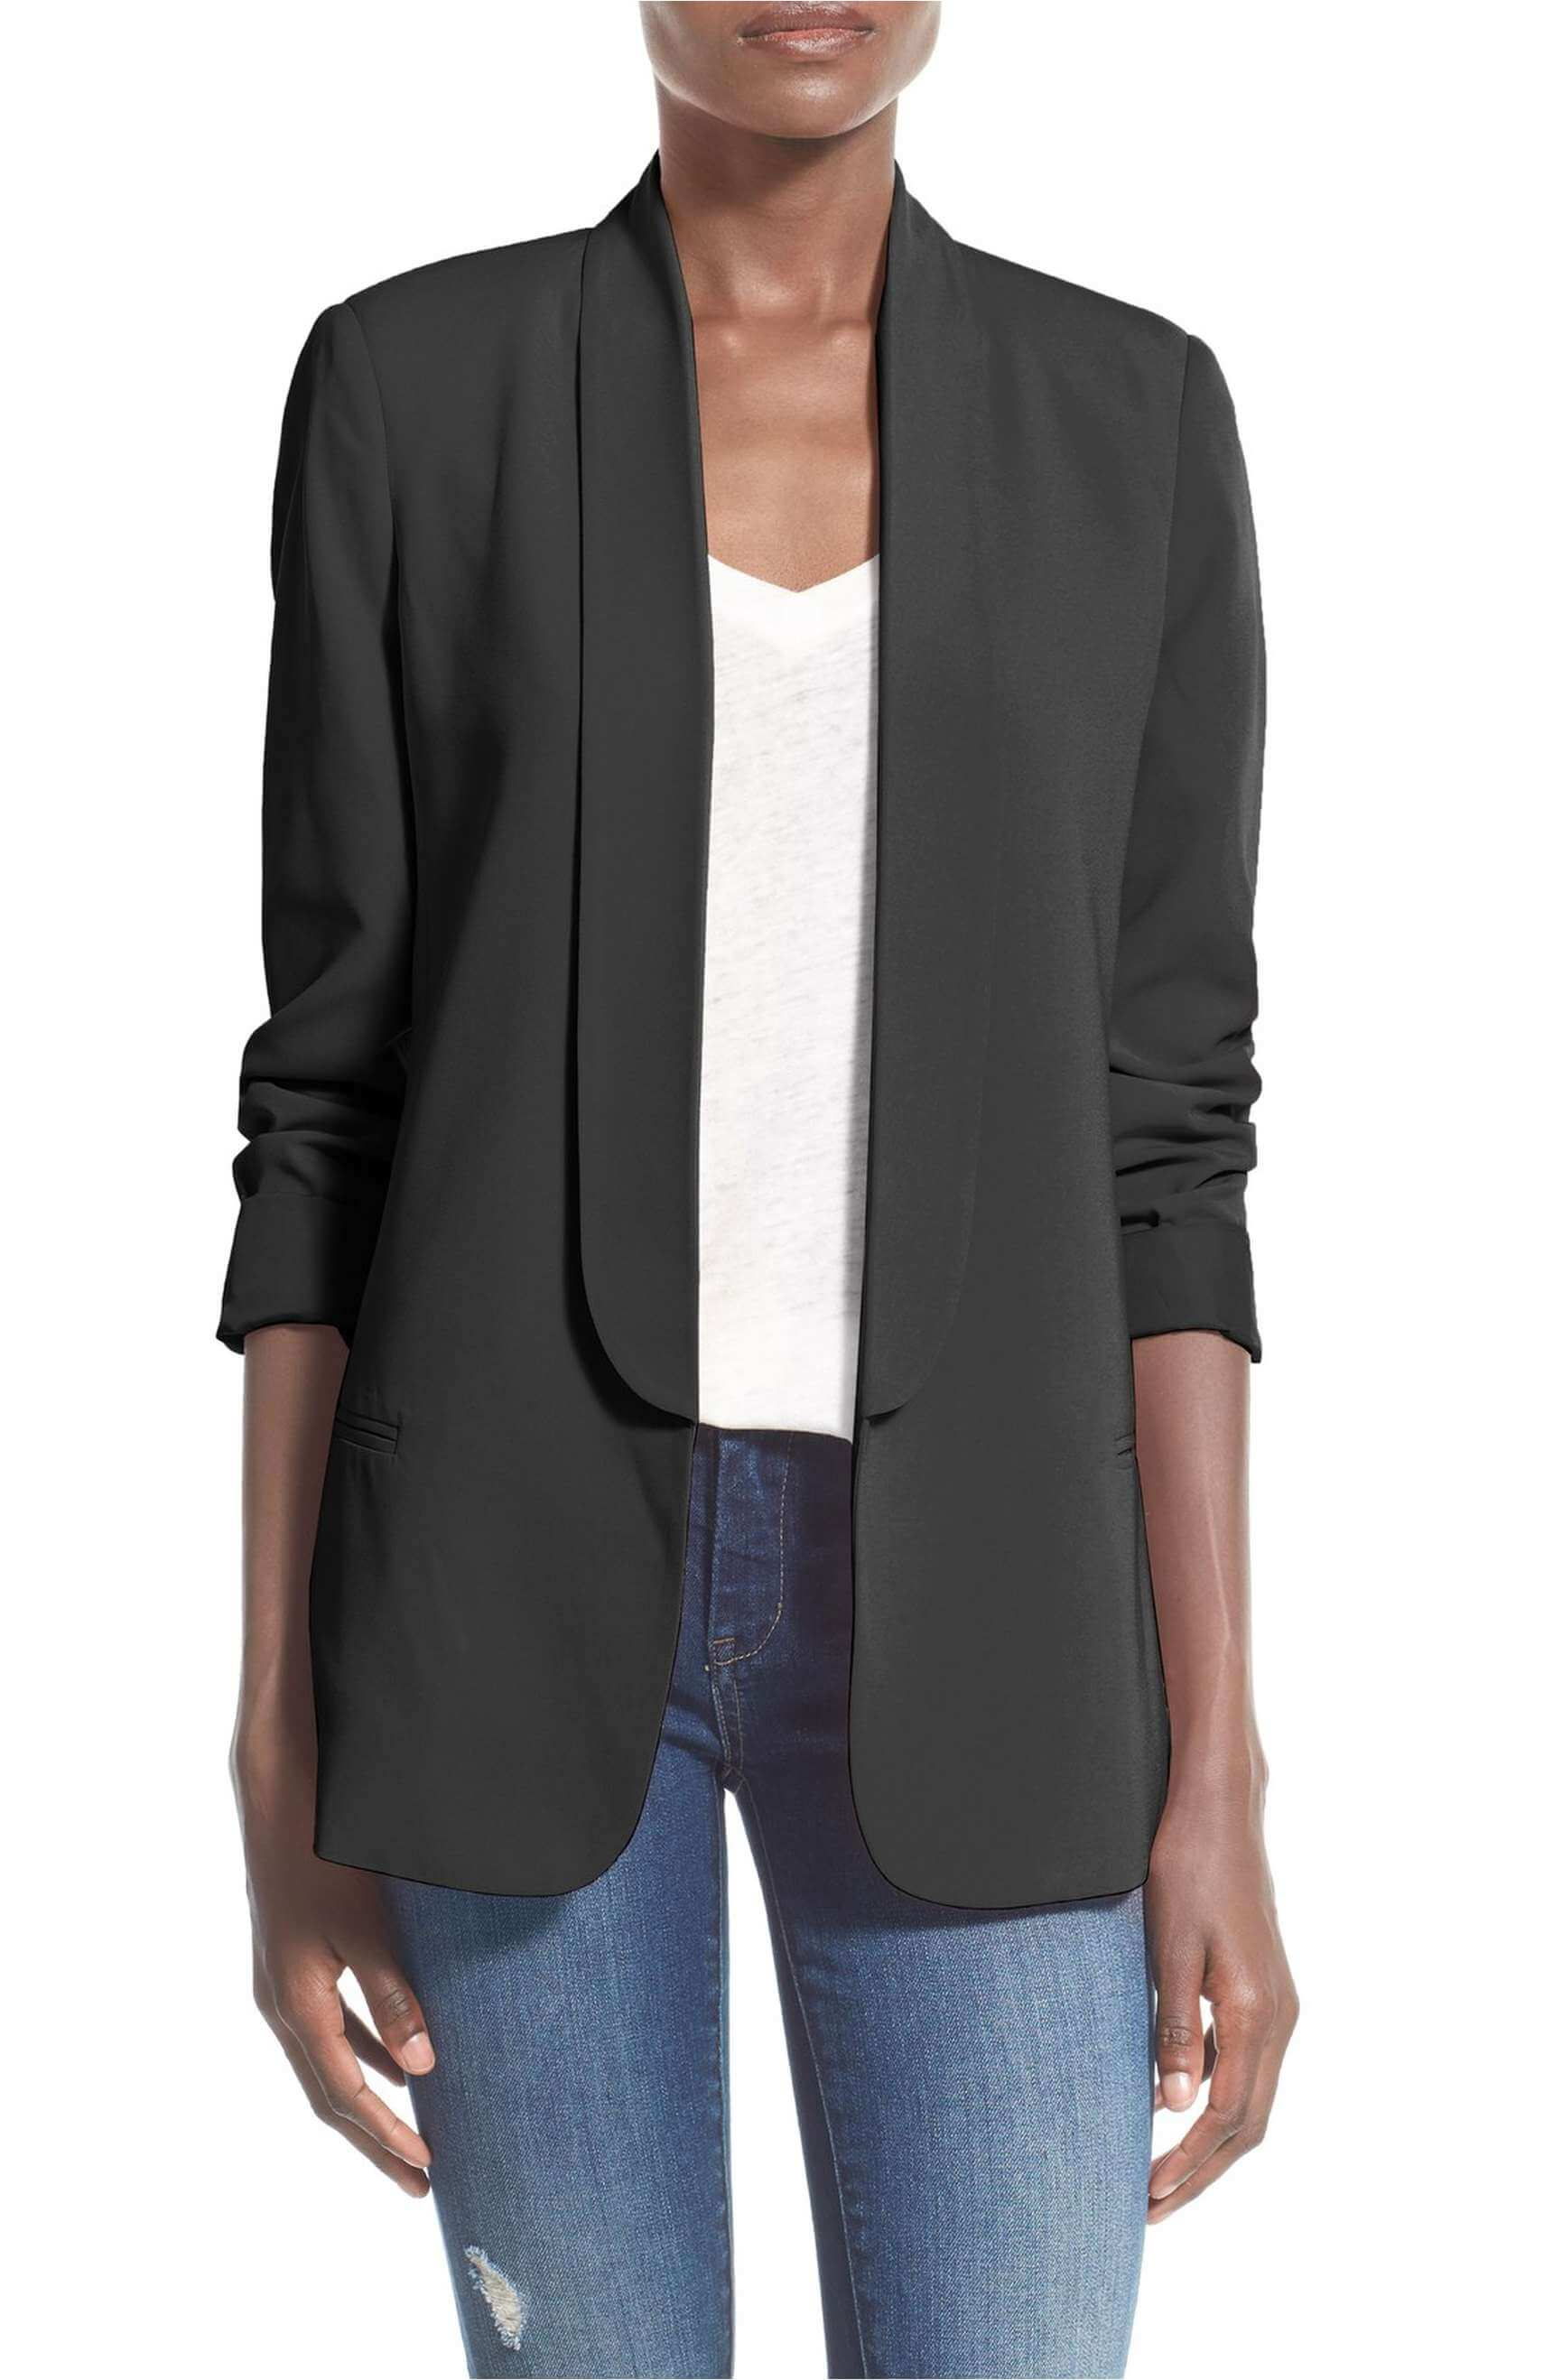 MURAL black blazer from Nordstrom